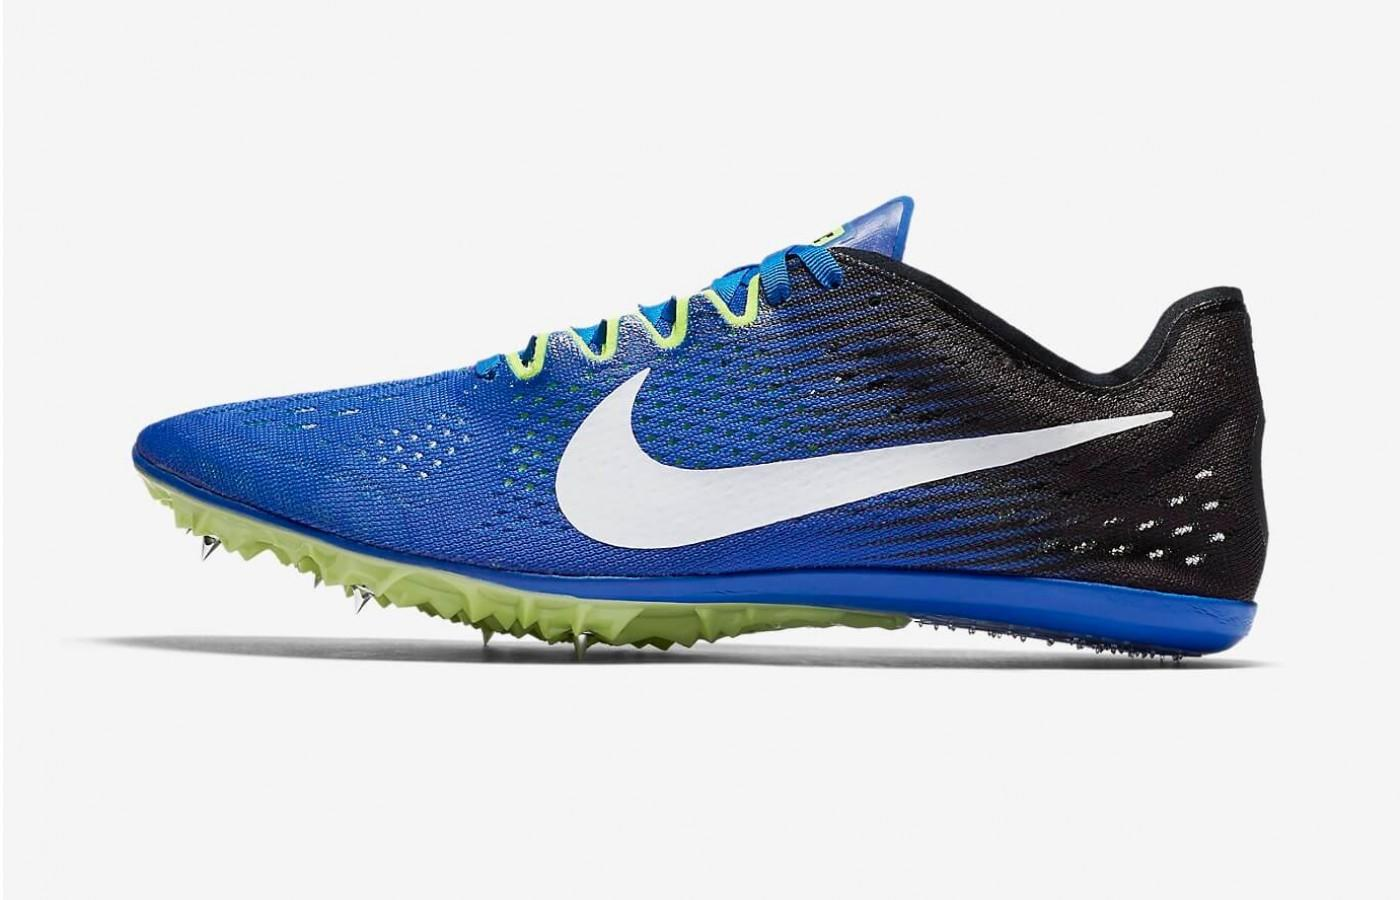 bdc1be61b49e The Zoom Victory 3 showcases Nike s trademark impeccable style.